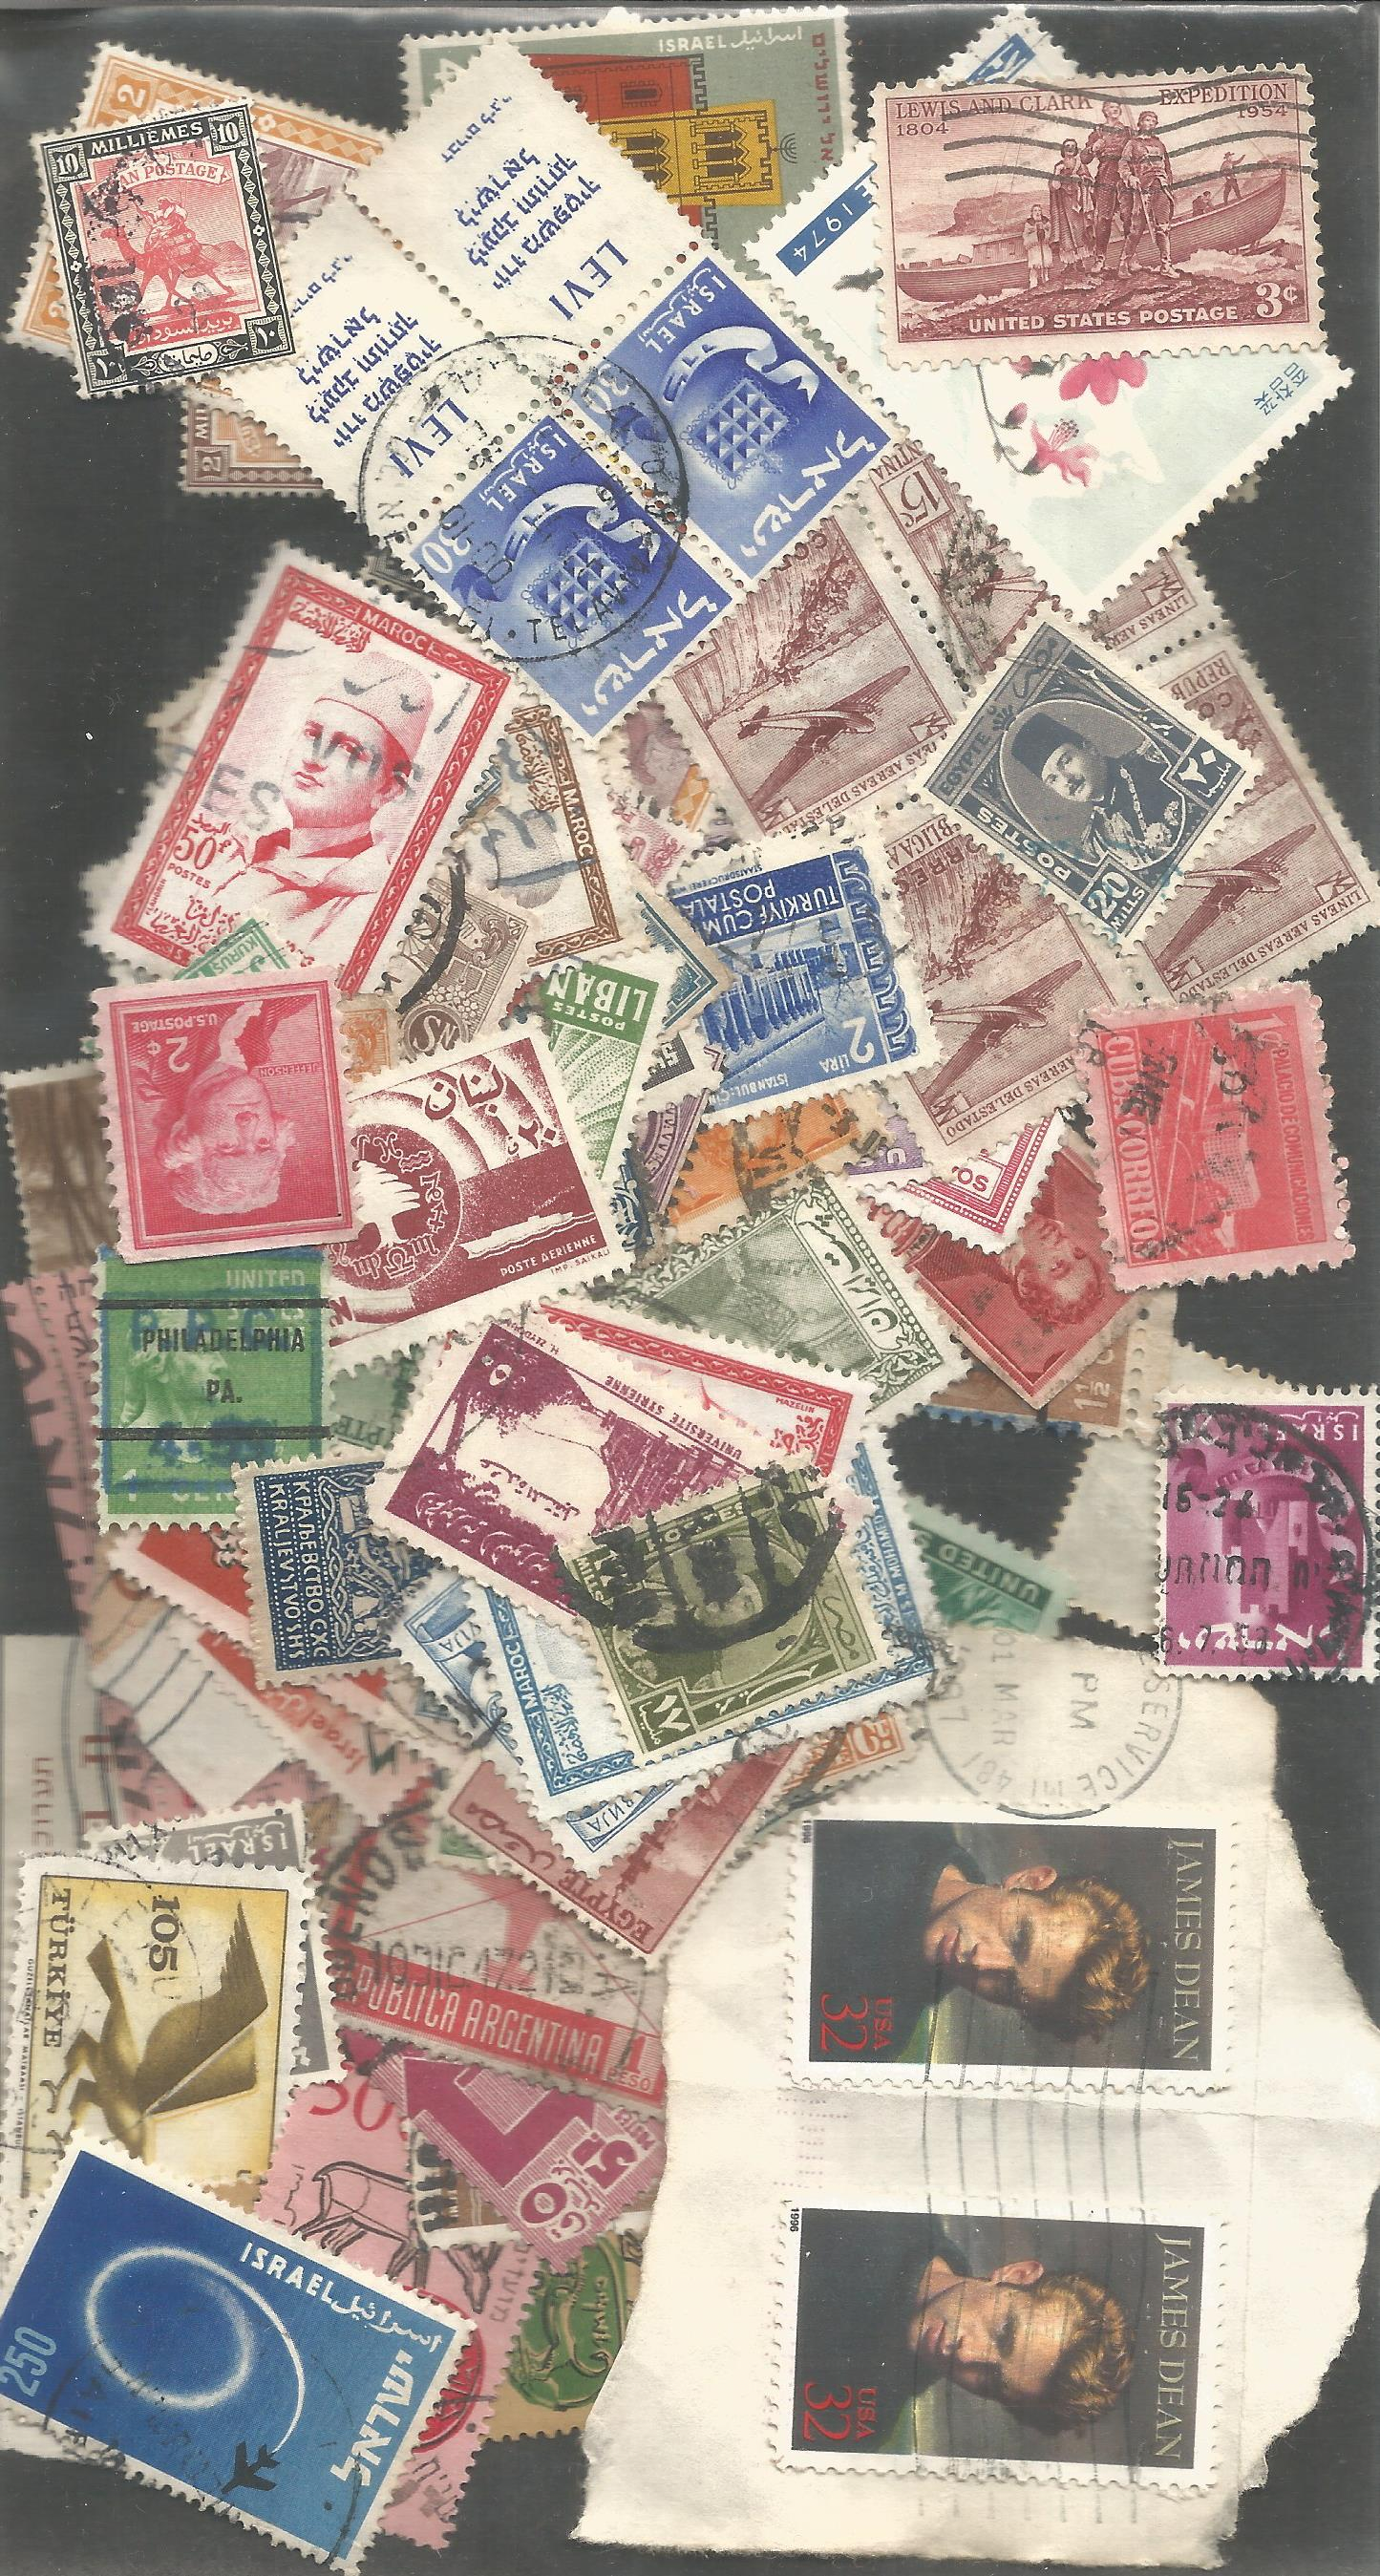 World loose stamp collection. Good condition. We combine postage on multiple winning lots and can